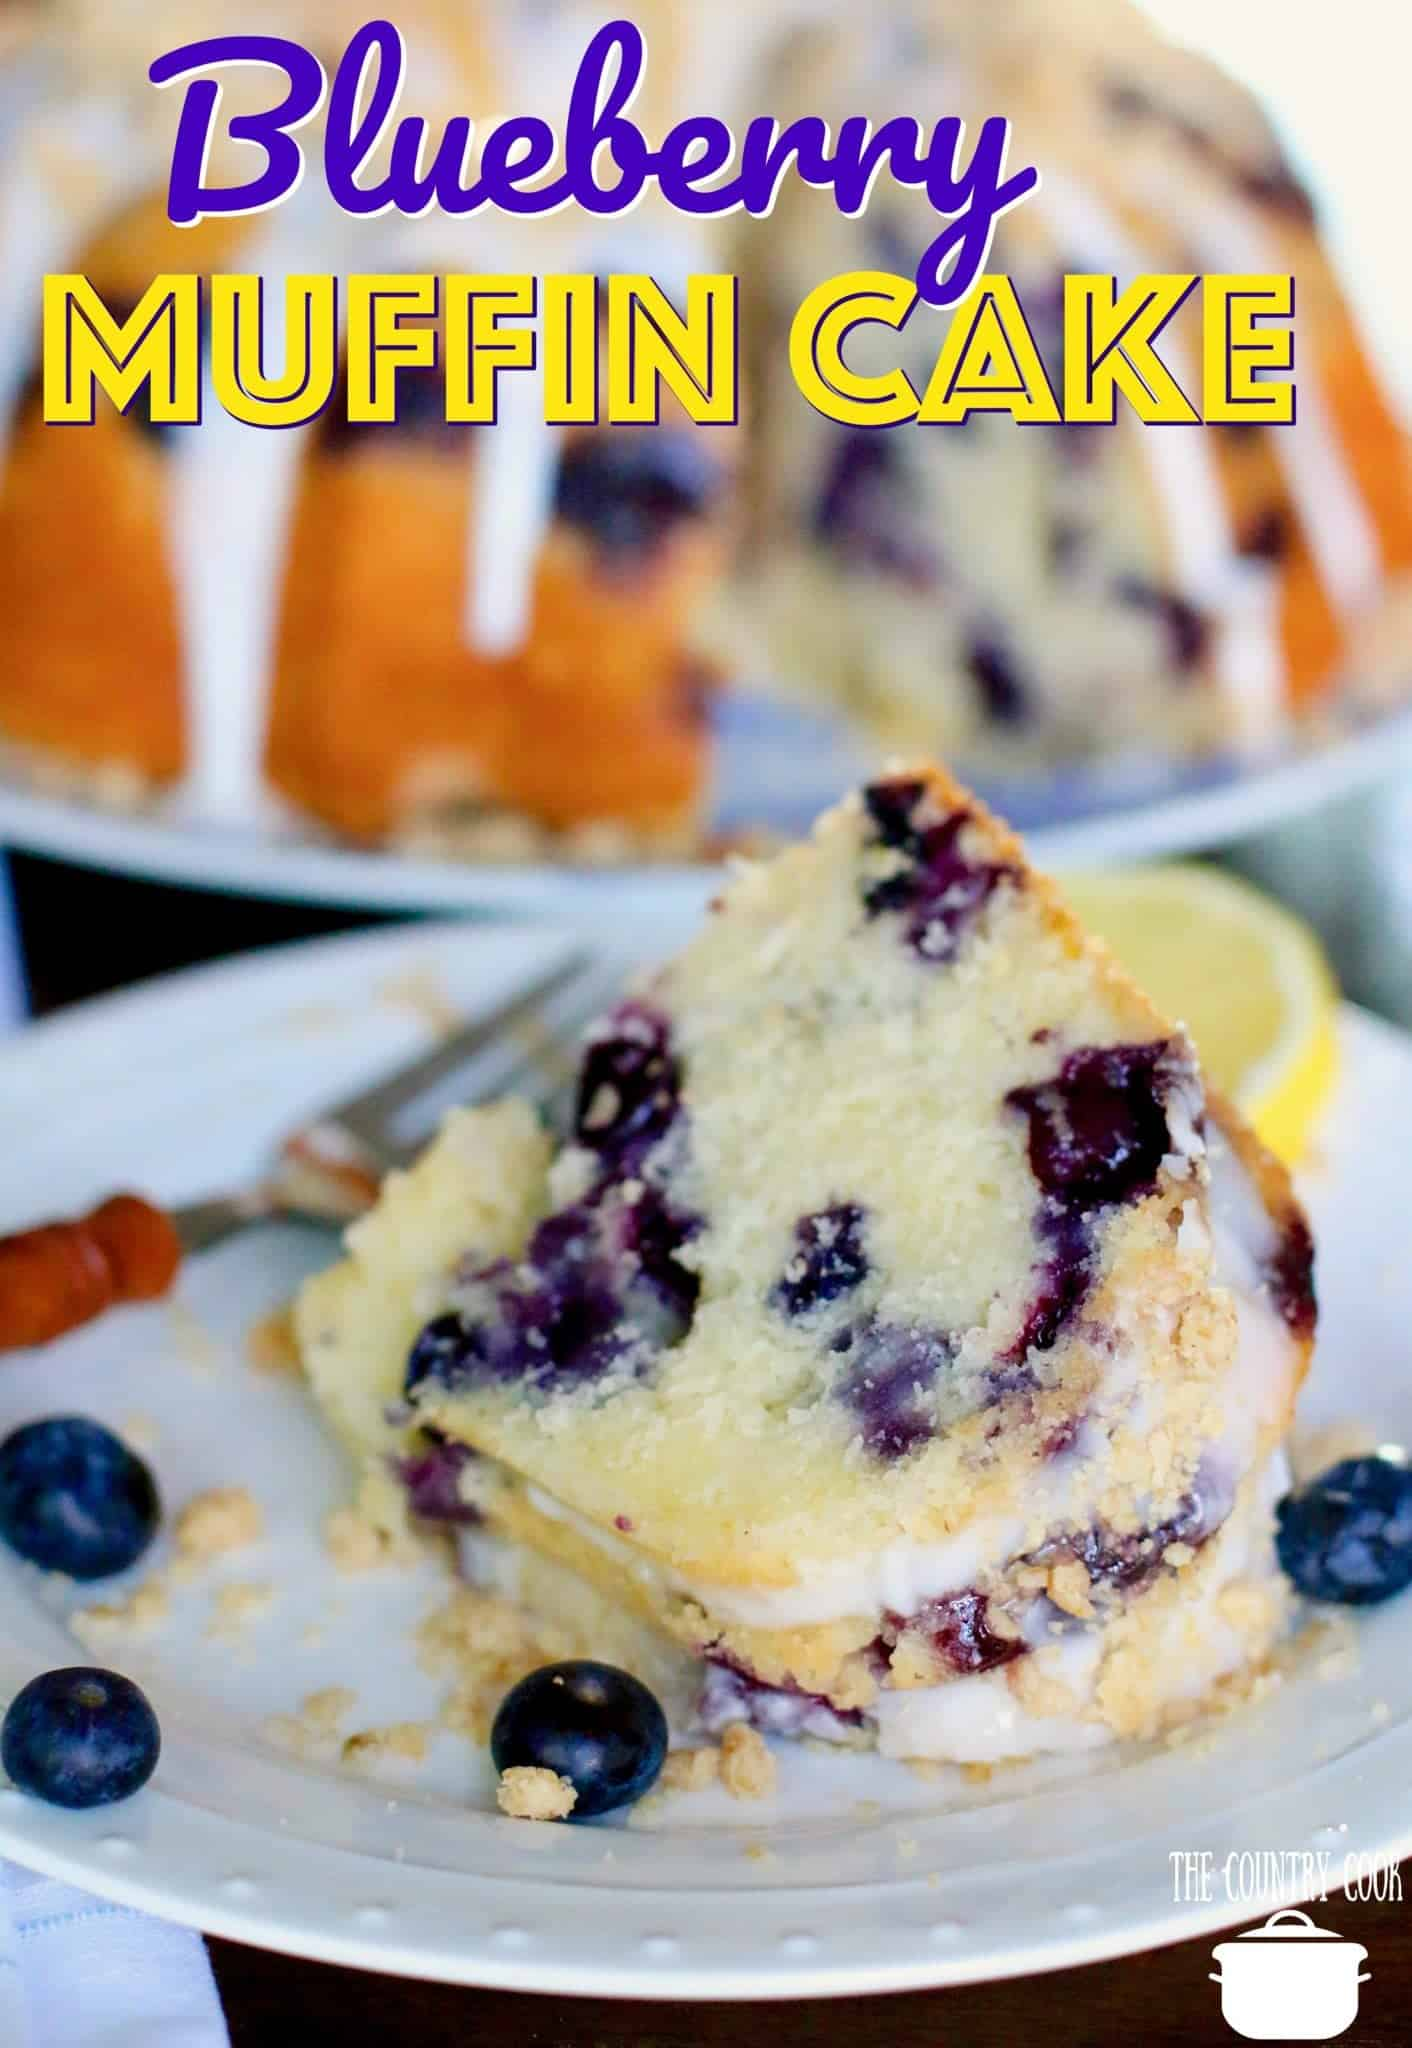 Blueberry Muffin Cake recipe from The Country Cook